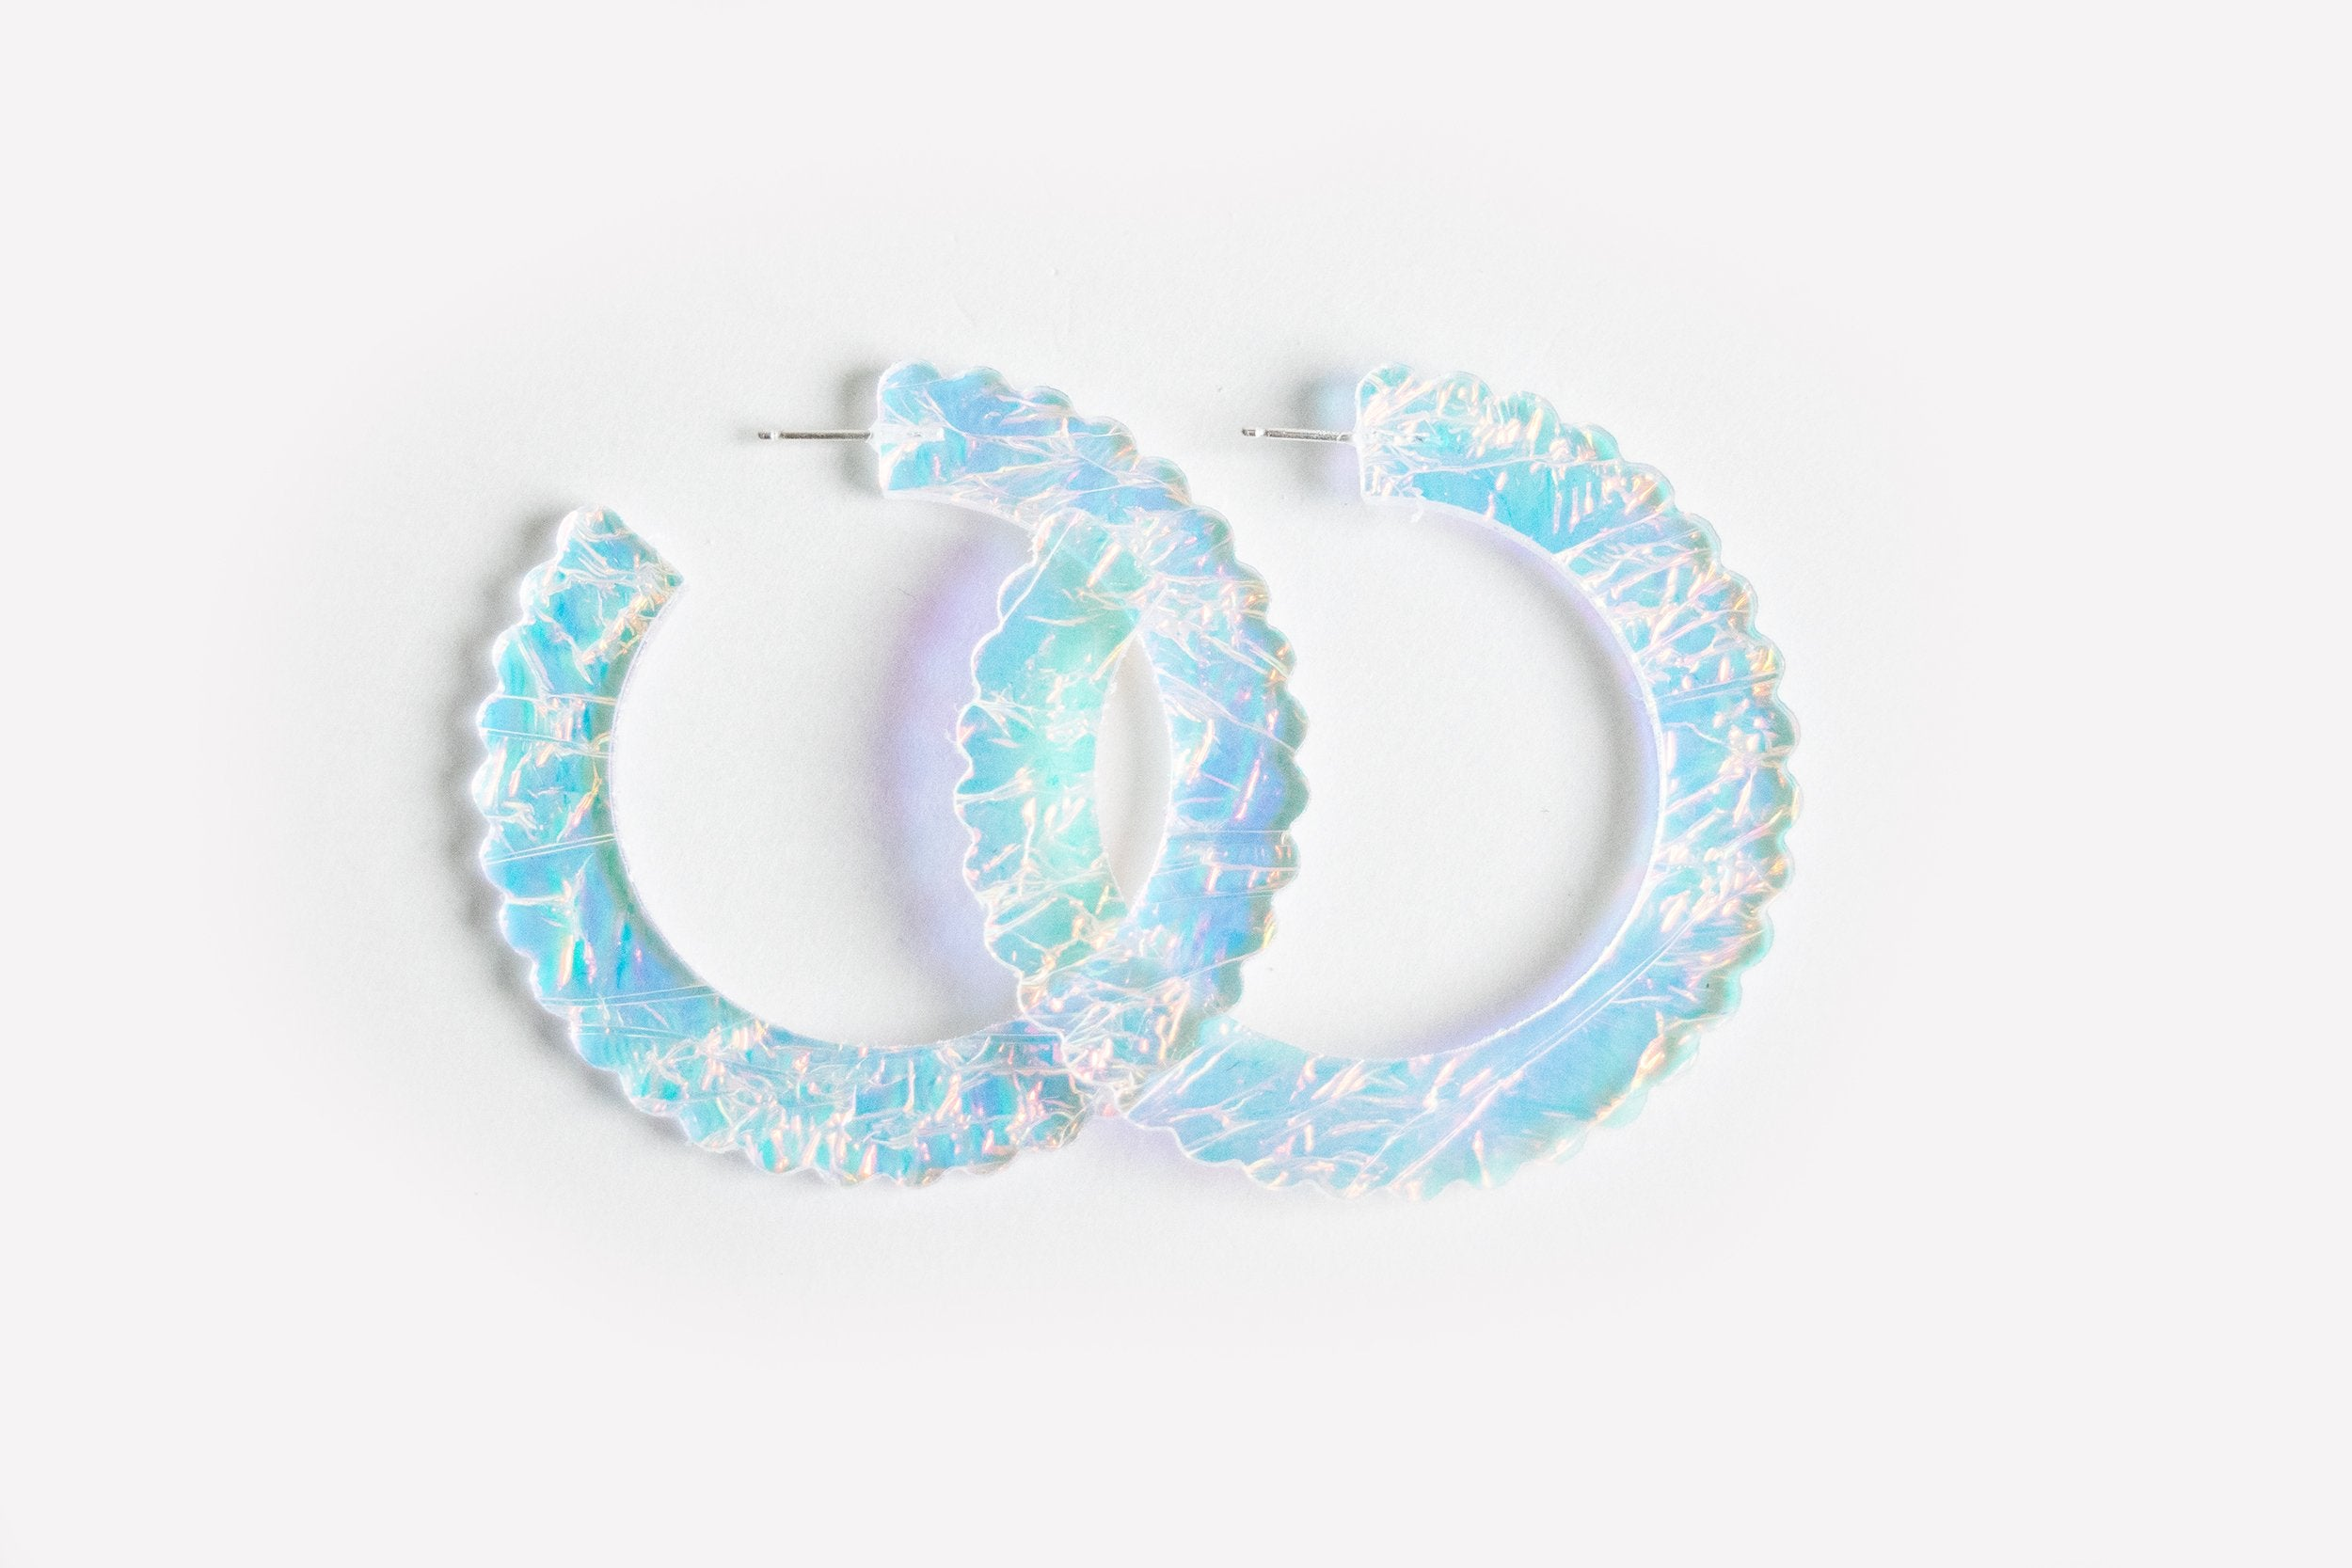 Ecoresin Scallop Earrings - Large Hoop